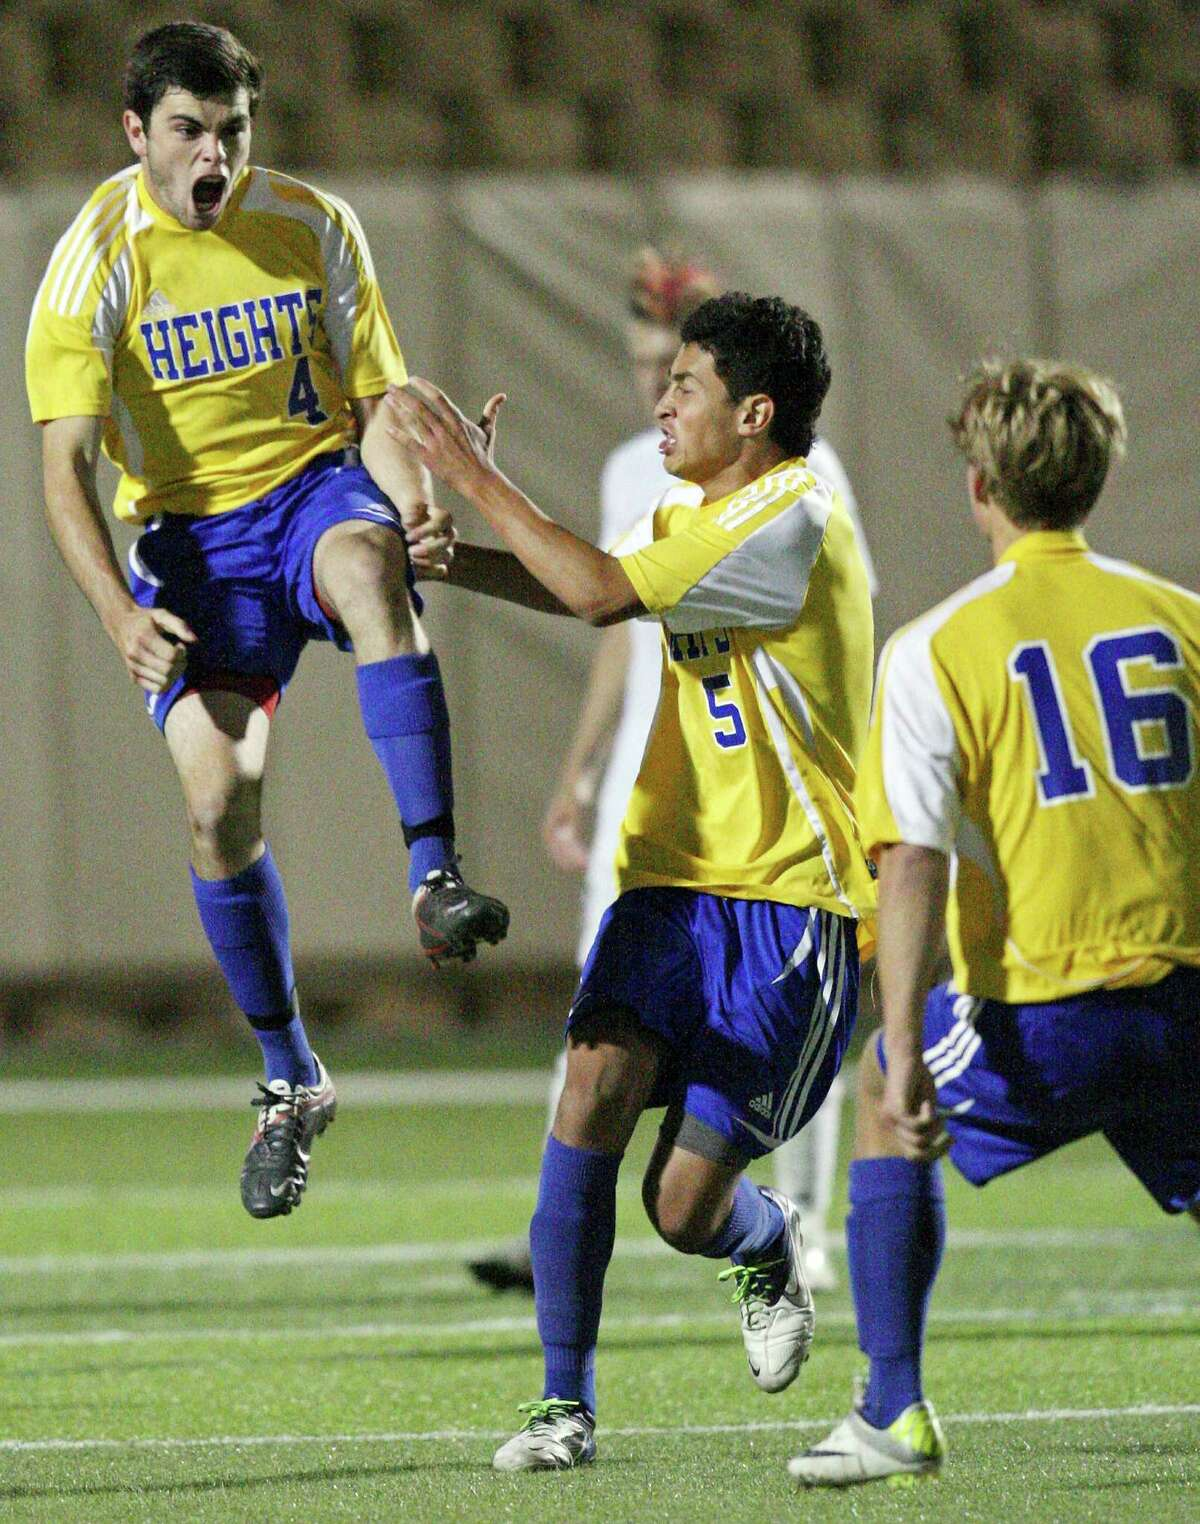 Alamo Heights' Alek Strimple (from left) celebrates with teammates Jesus Espin, and Robert Weigel after scoring against Wichita Falls Rider during overtime action of their Class 4A state final game Saturday, April 21, 2012 at Birkelbach Field in Georgetown. Alamo Heights won 3-2 in a shootout.